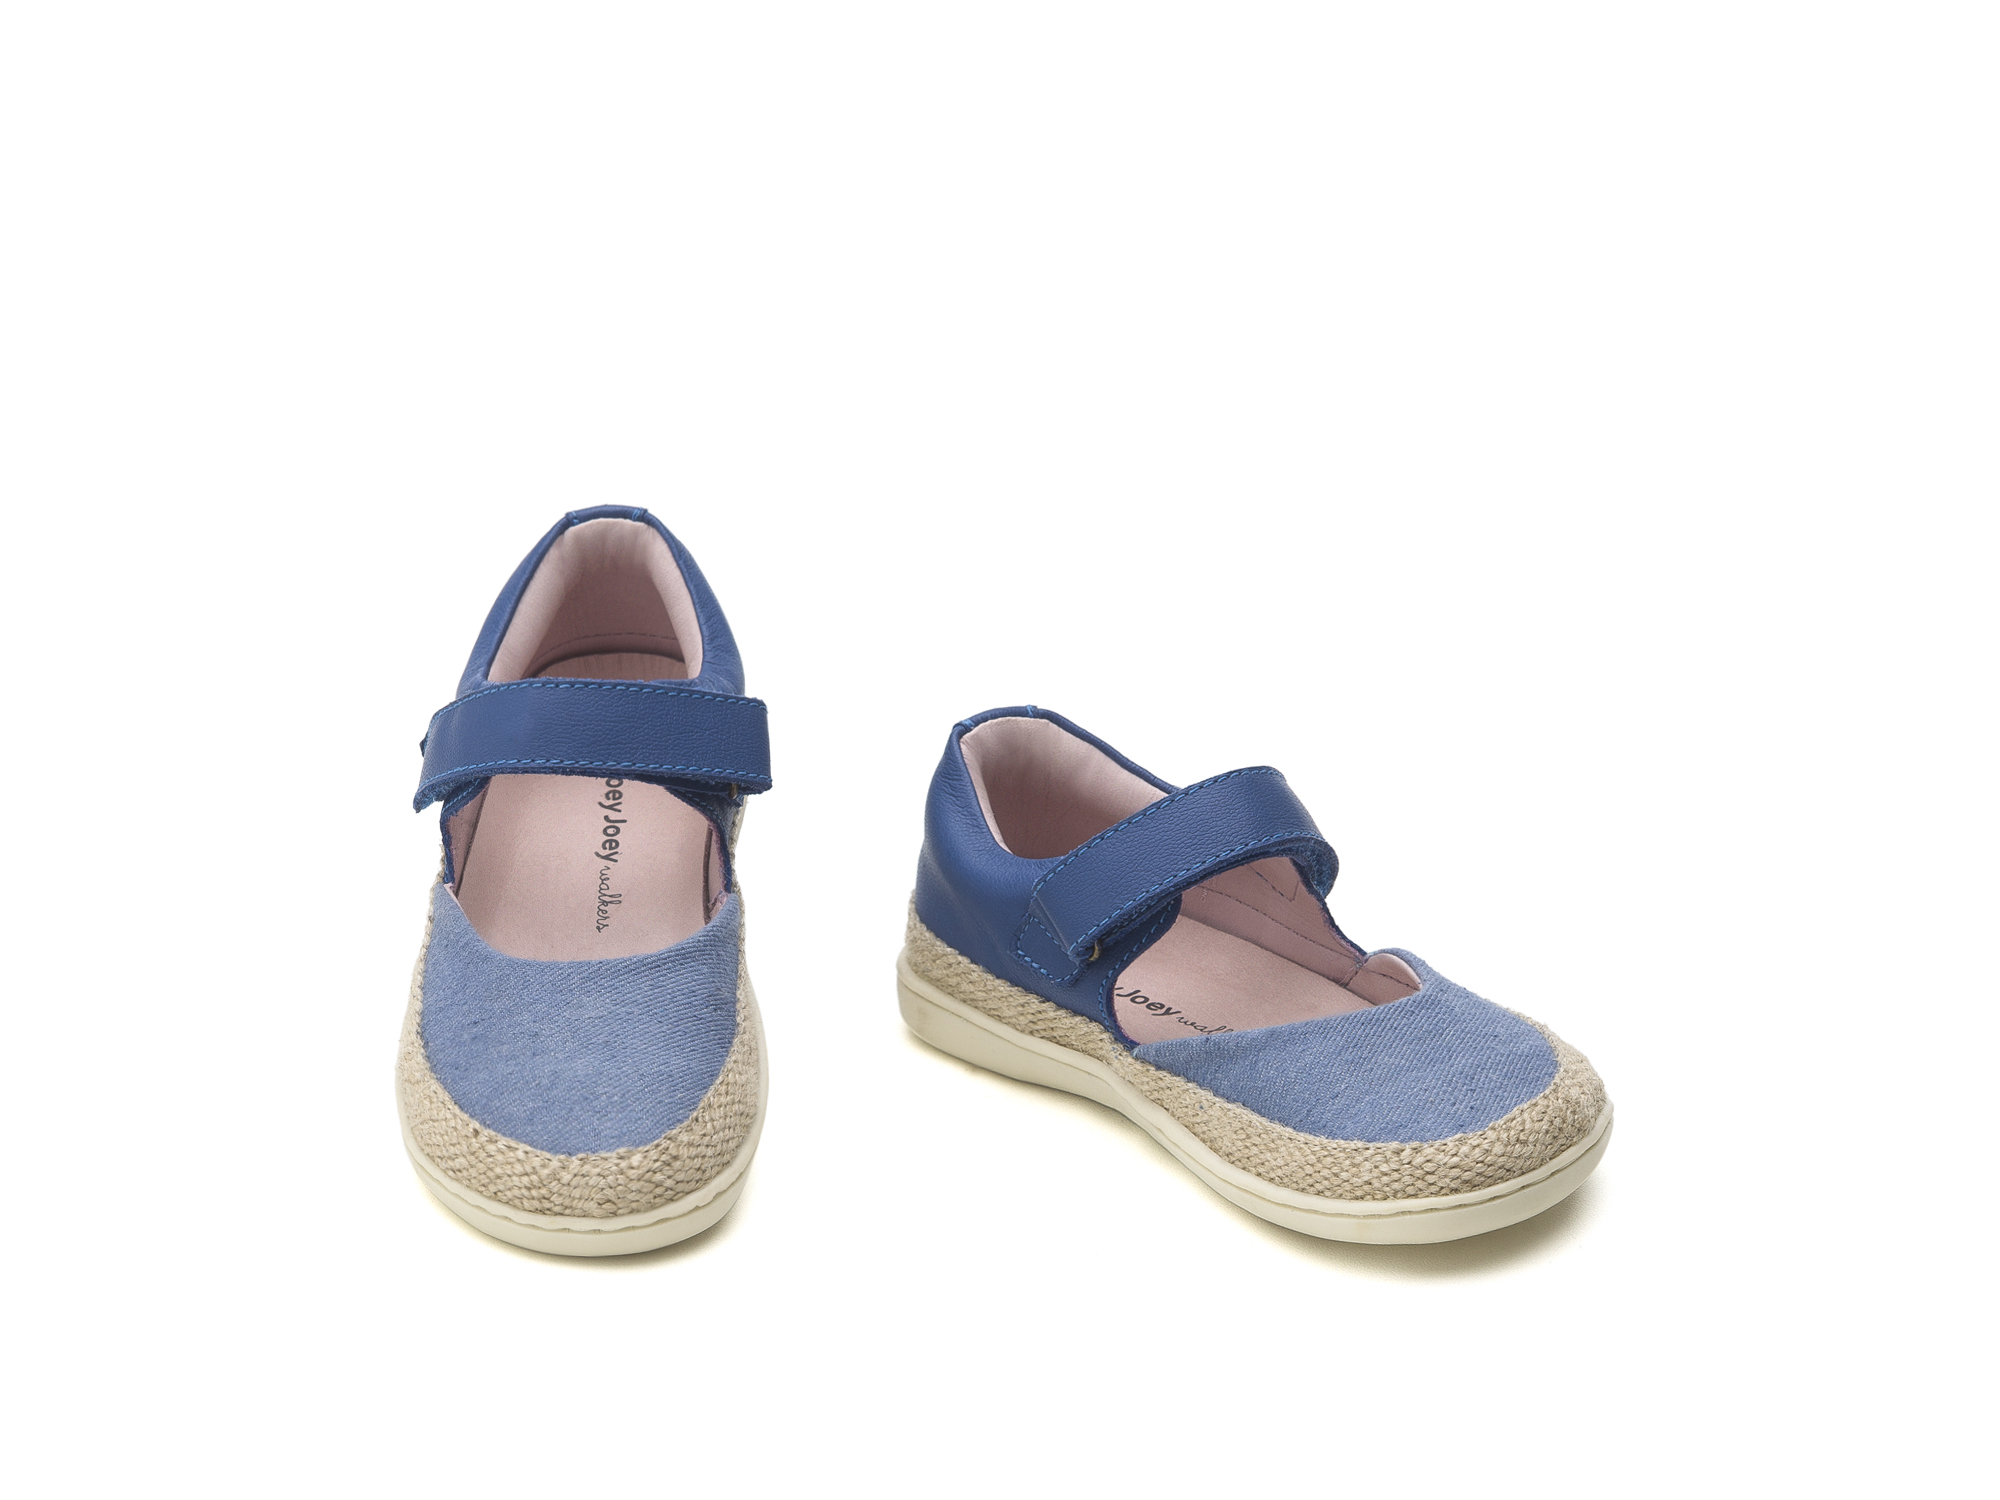 Boneca Little Seaside Light Denim Canvas/ Blue Tang Toddler 2 à 4 anos - 2